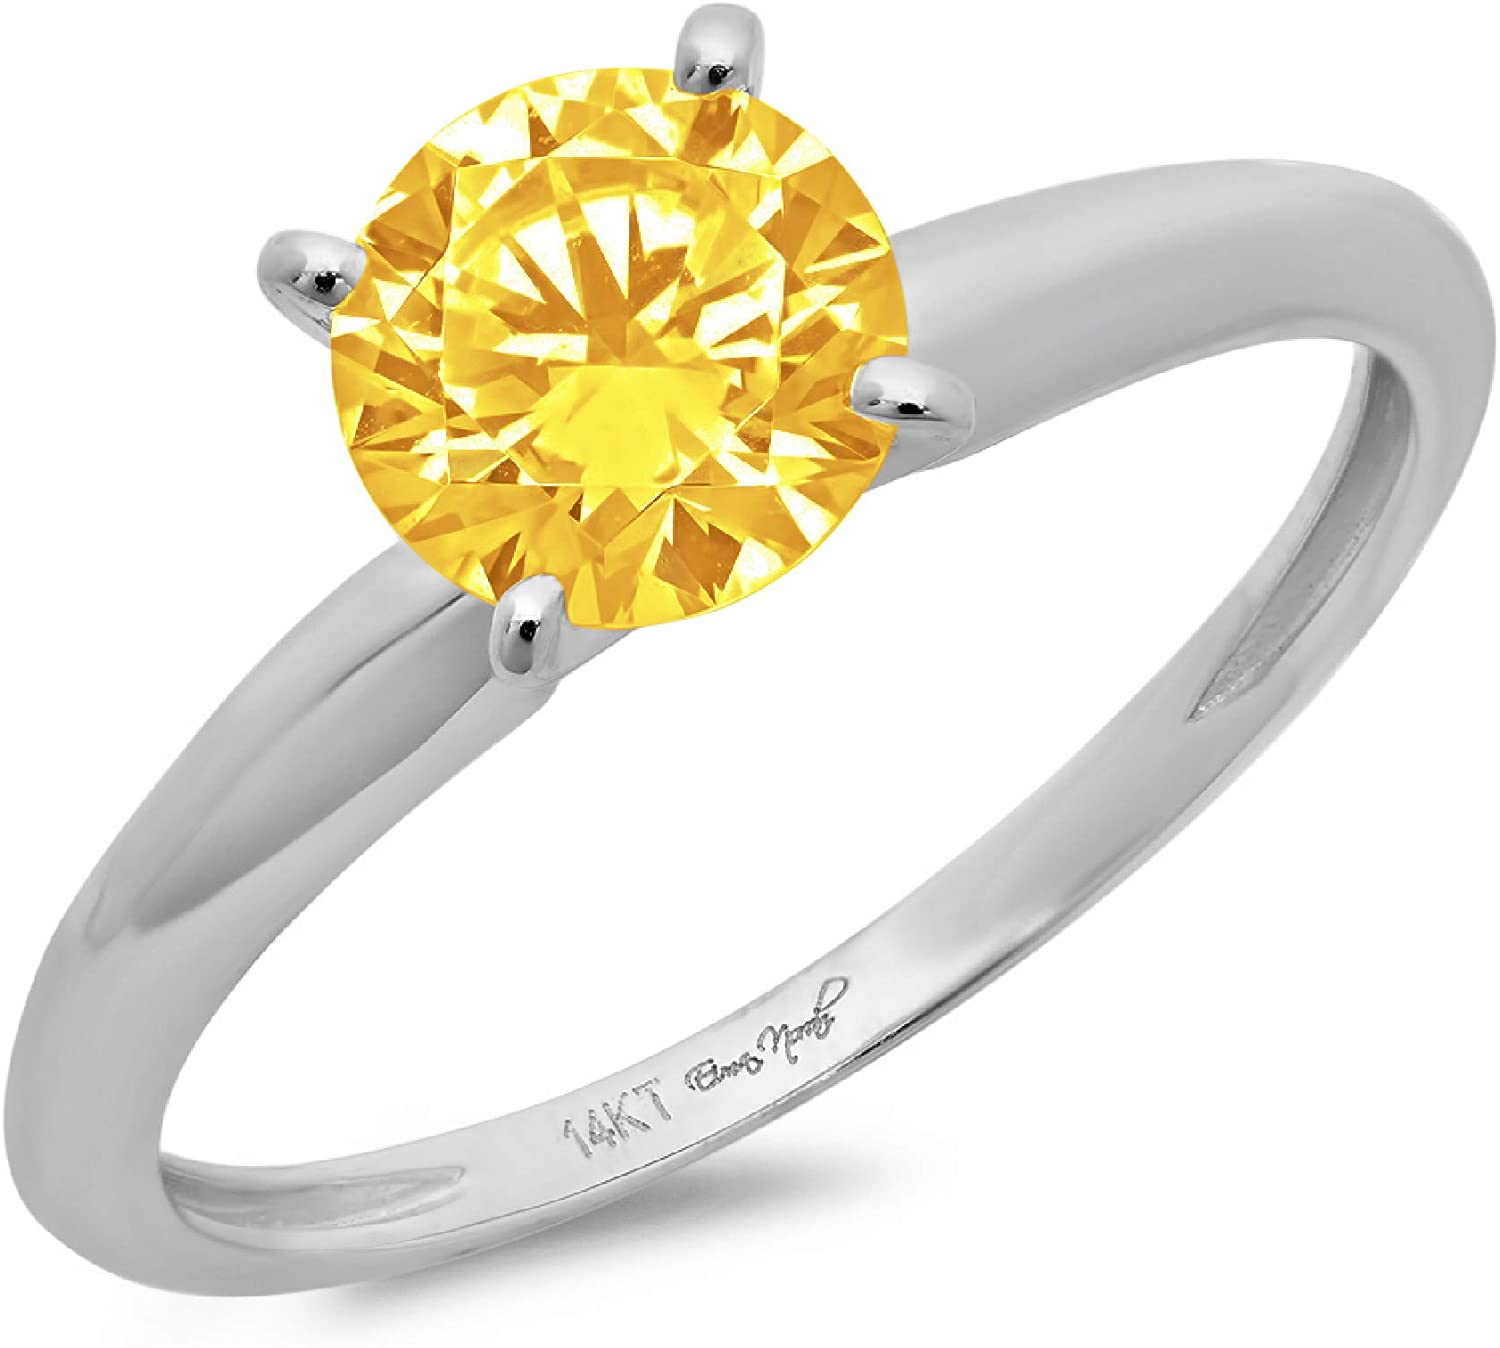 1.9ct Brilliant Round Cut Solitaire Natural Yellow Citrine Ideal VVS1 4-Prong Engagement Wedding Bridal Promise Anniversary Ring in Solid 14k White Gold for Women